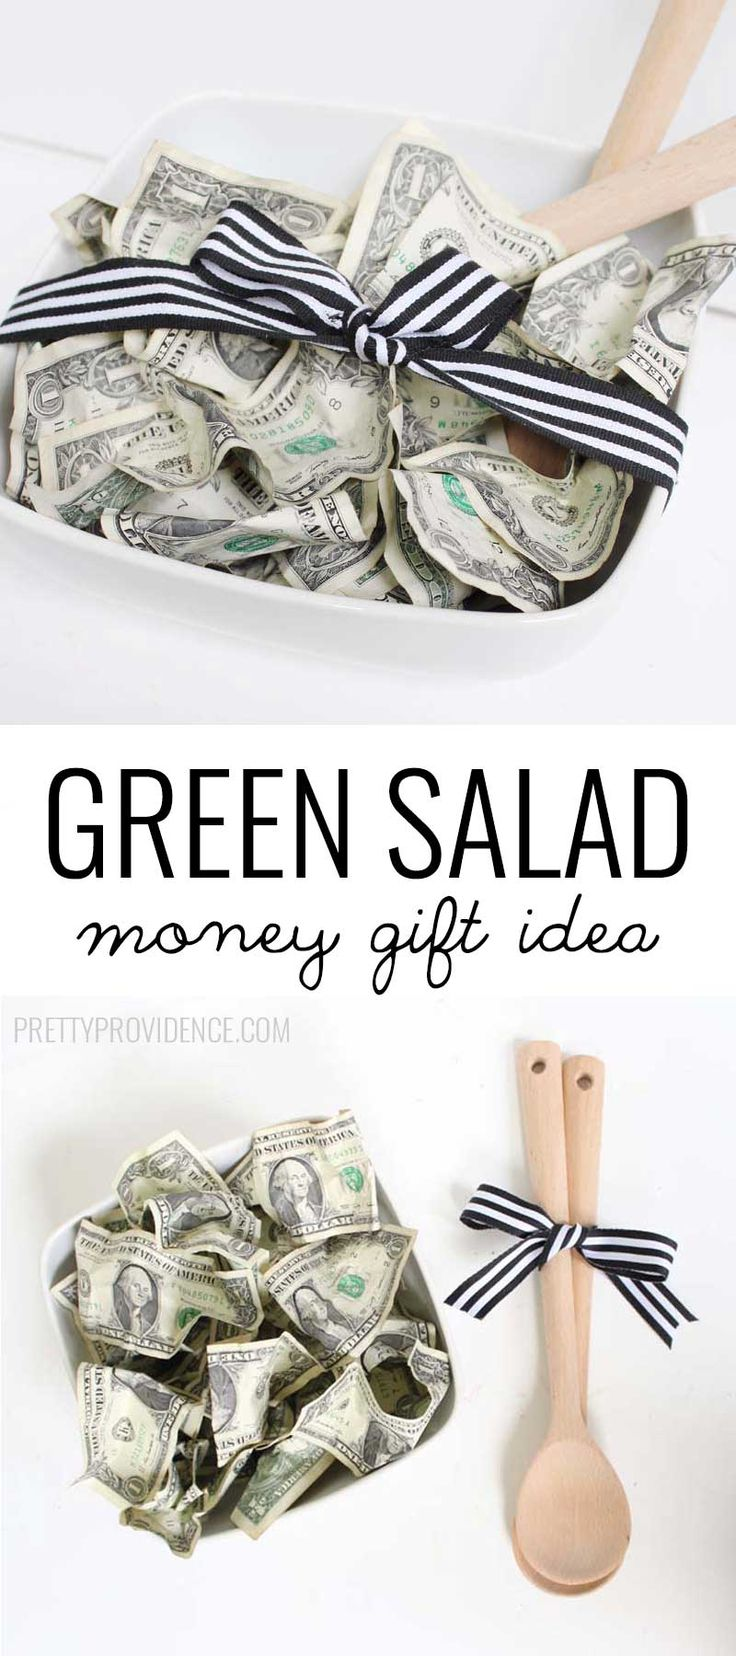 120 best DIY Gifts images on Pinterest | Gift ideas, Original gifts ...